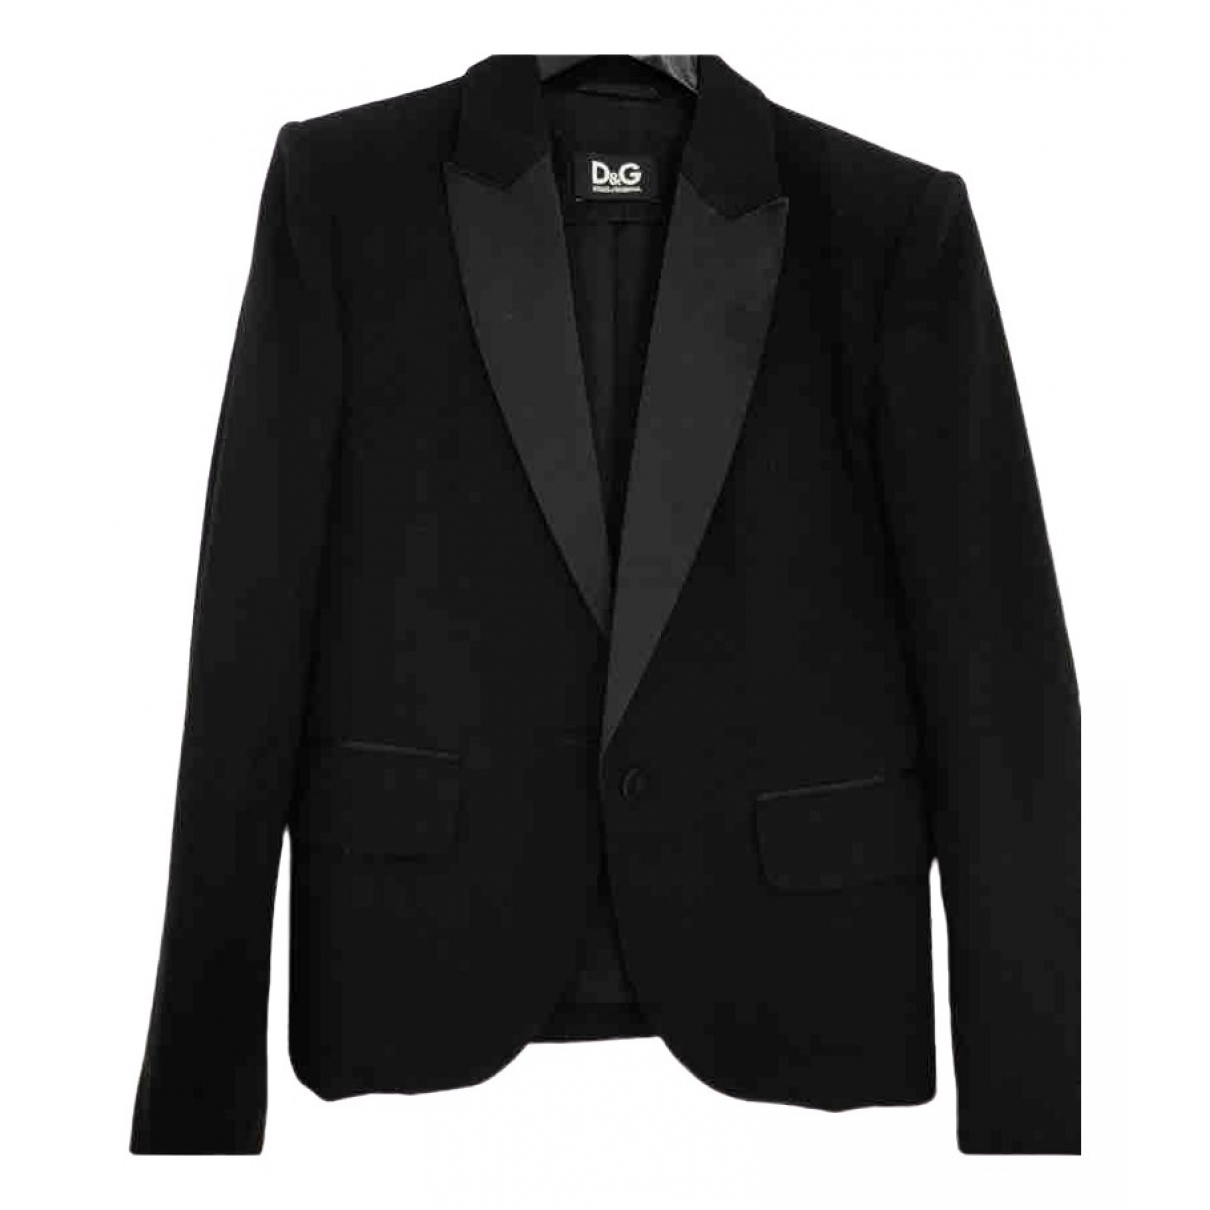 D&g \N Black Wool jacket for Women 36 FR